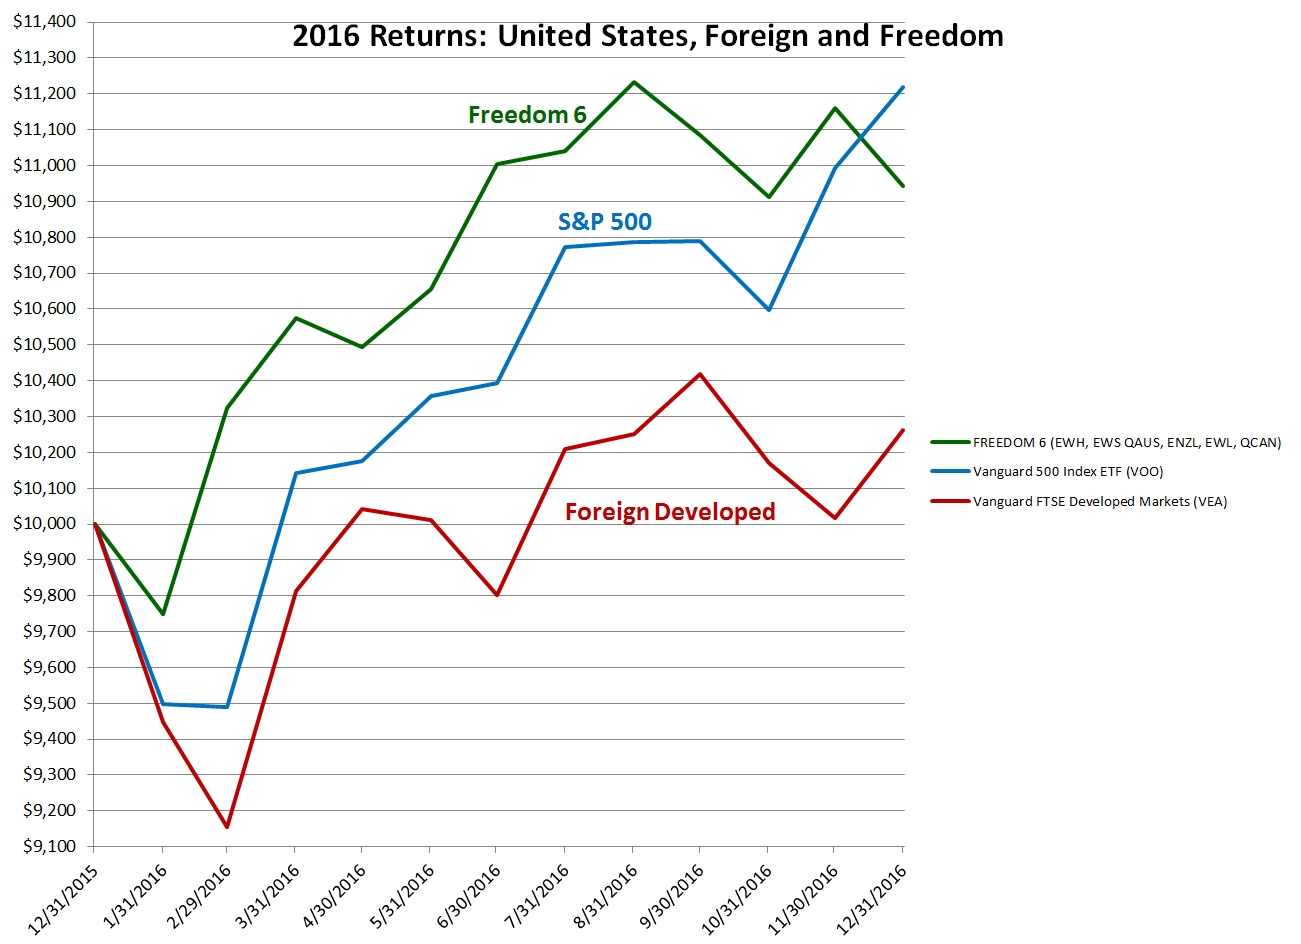 Freedom Investing and Emerging Markets in 2016